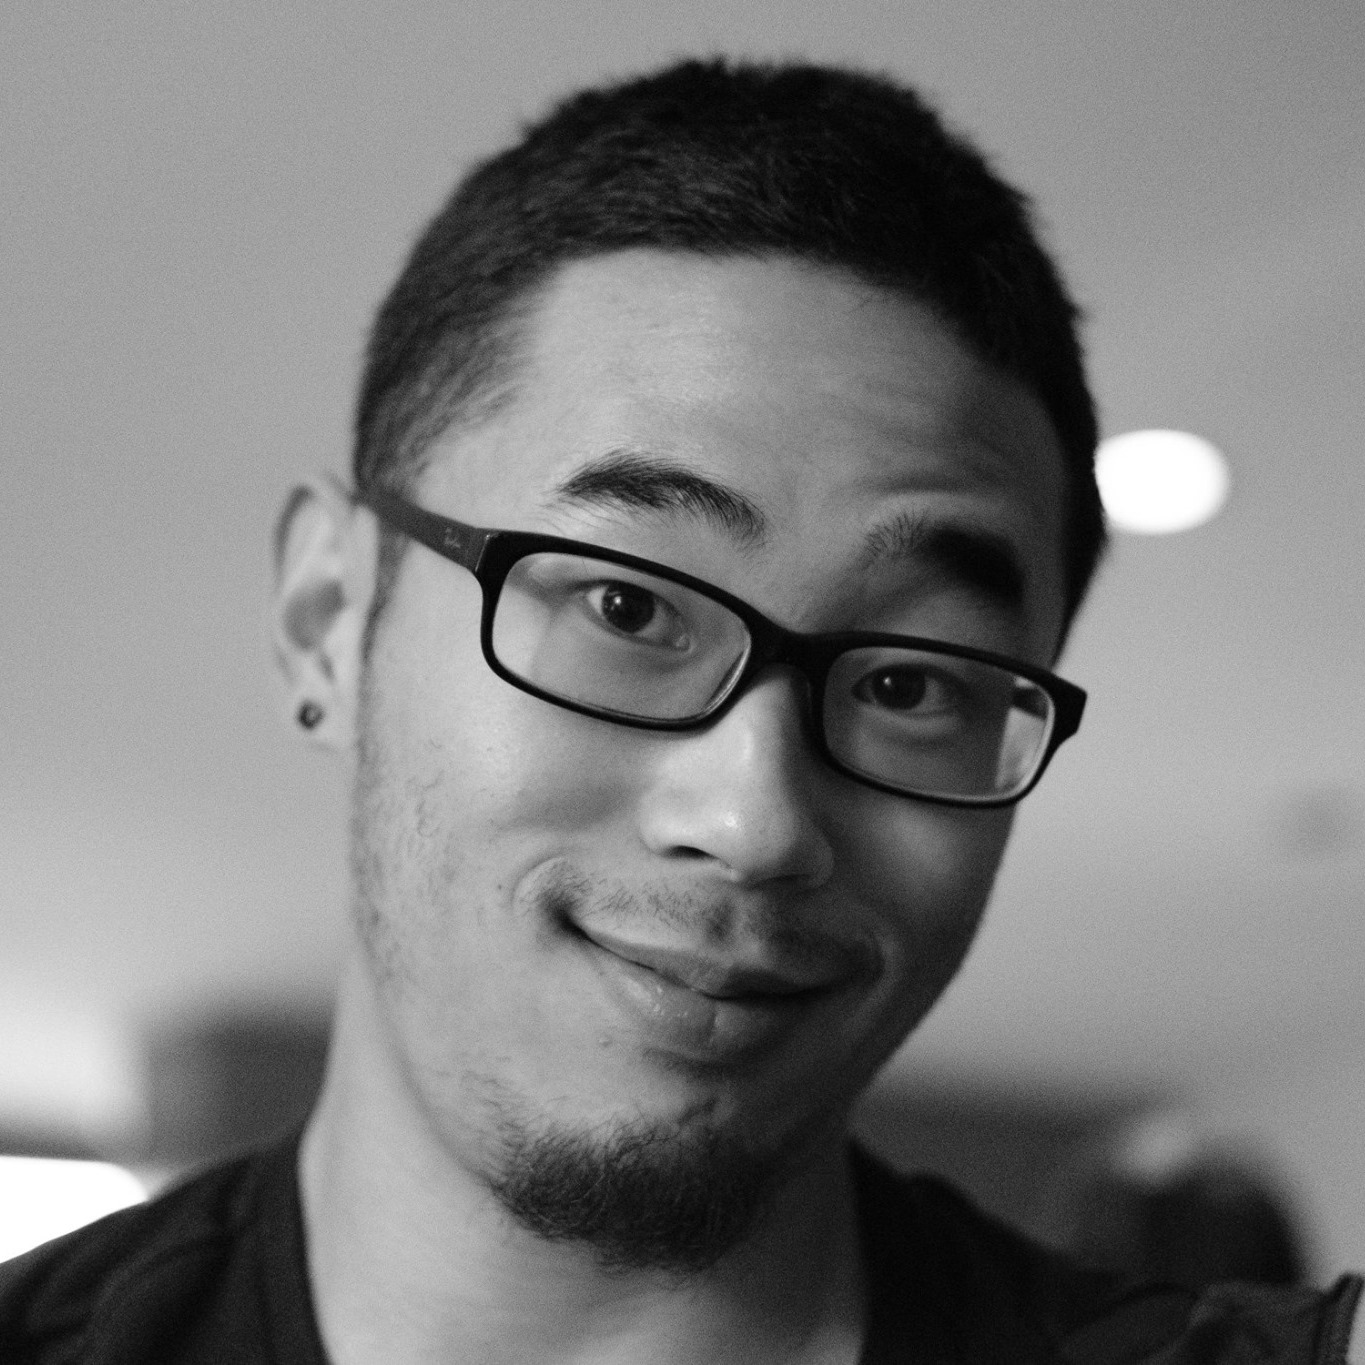 Daniel Song (Freelance Filmmaker) -